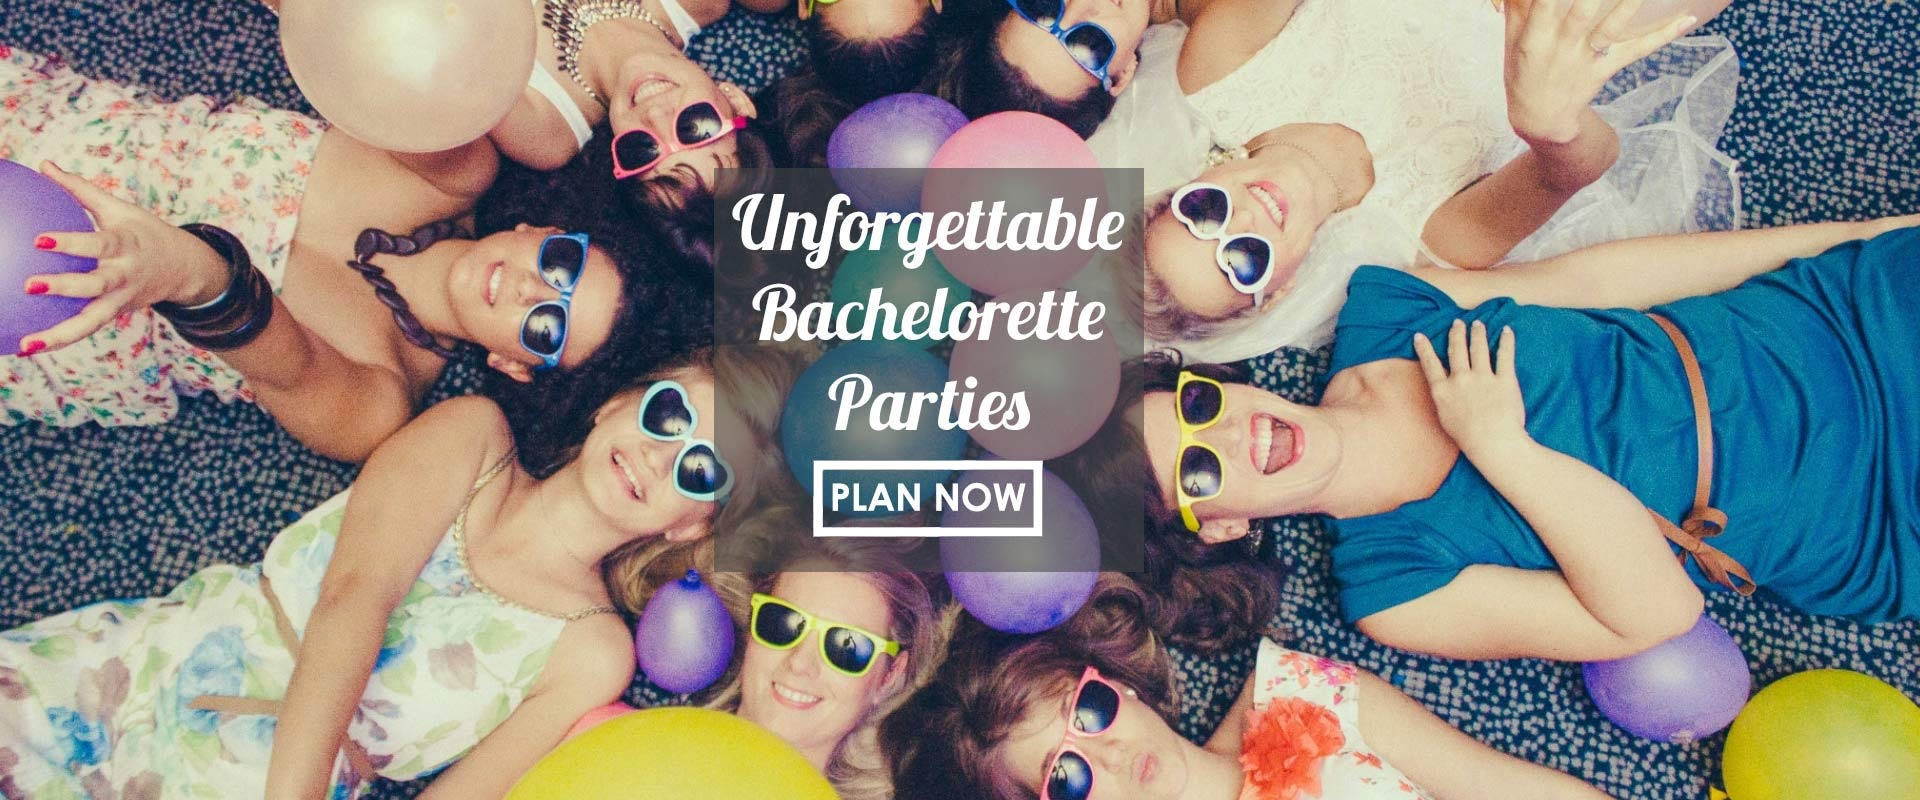 bachelorette party in singapore